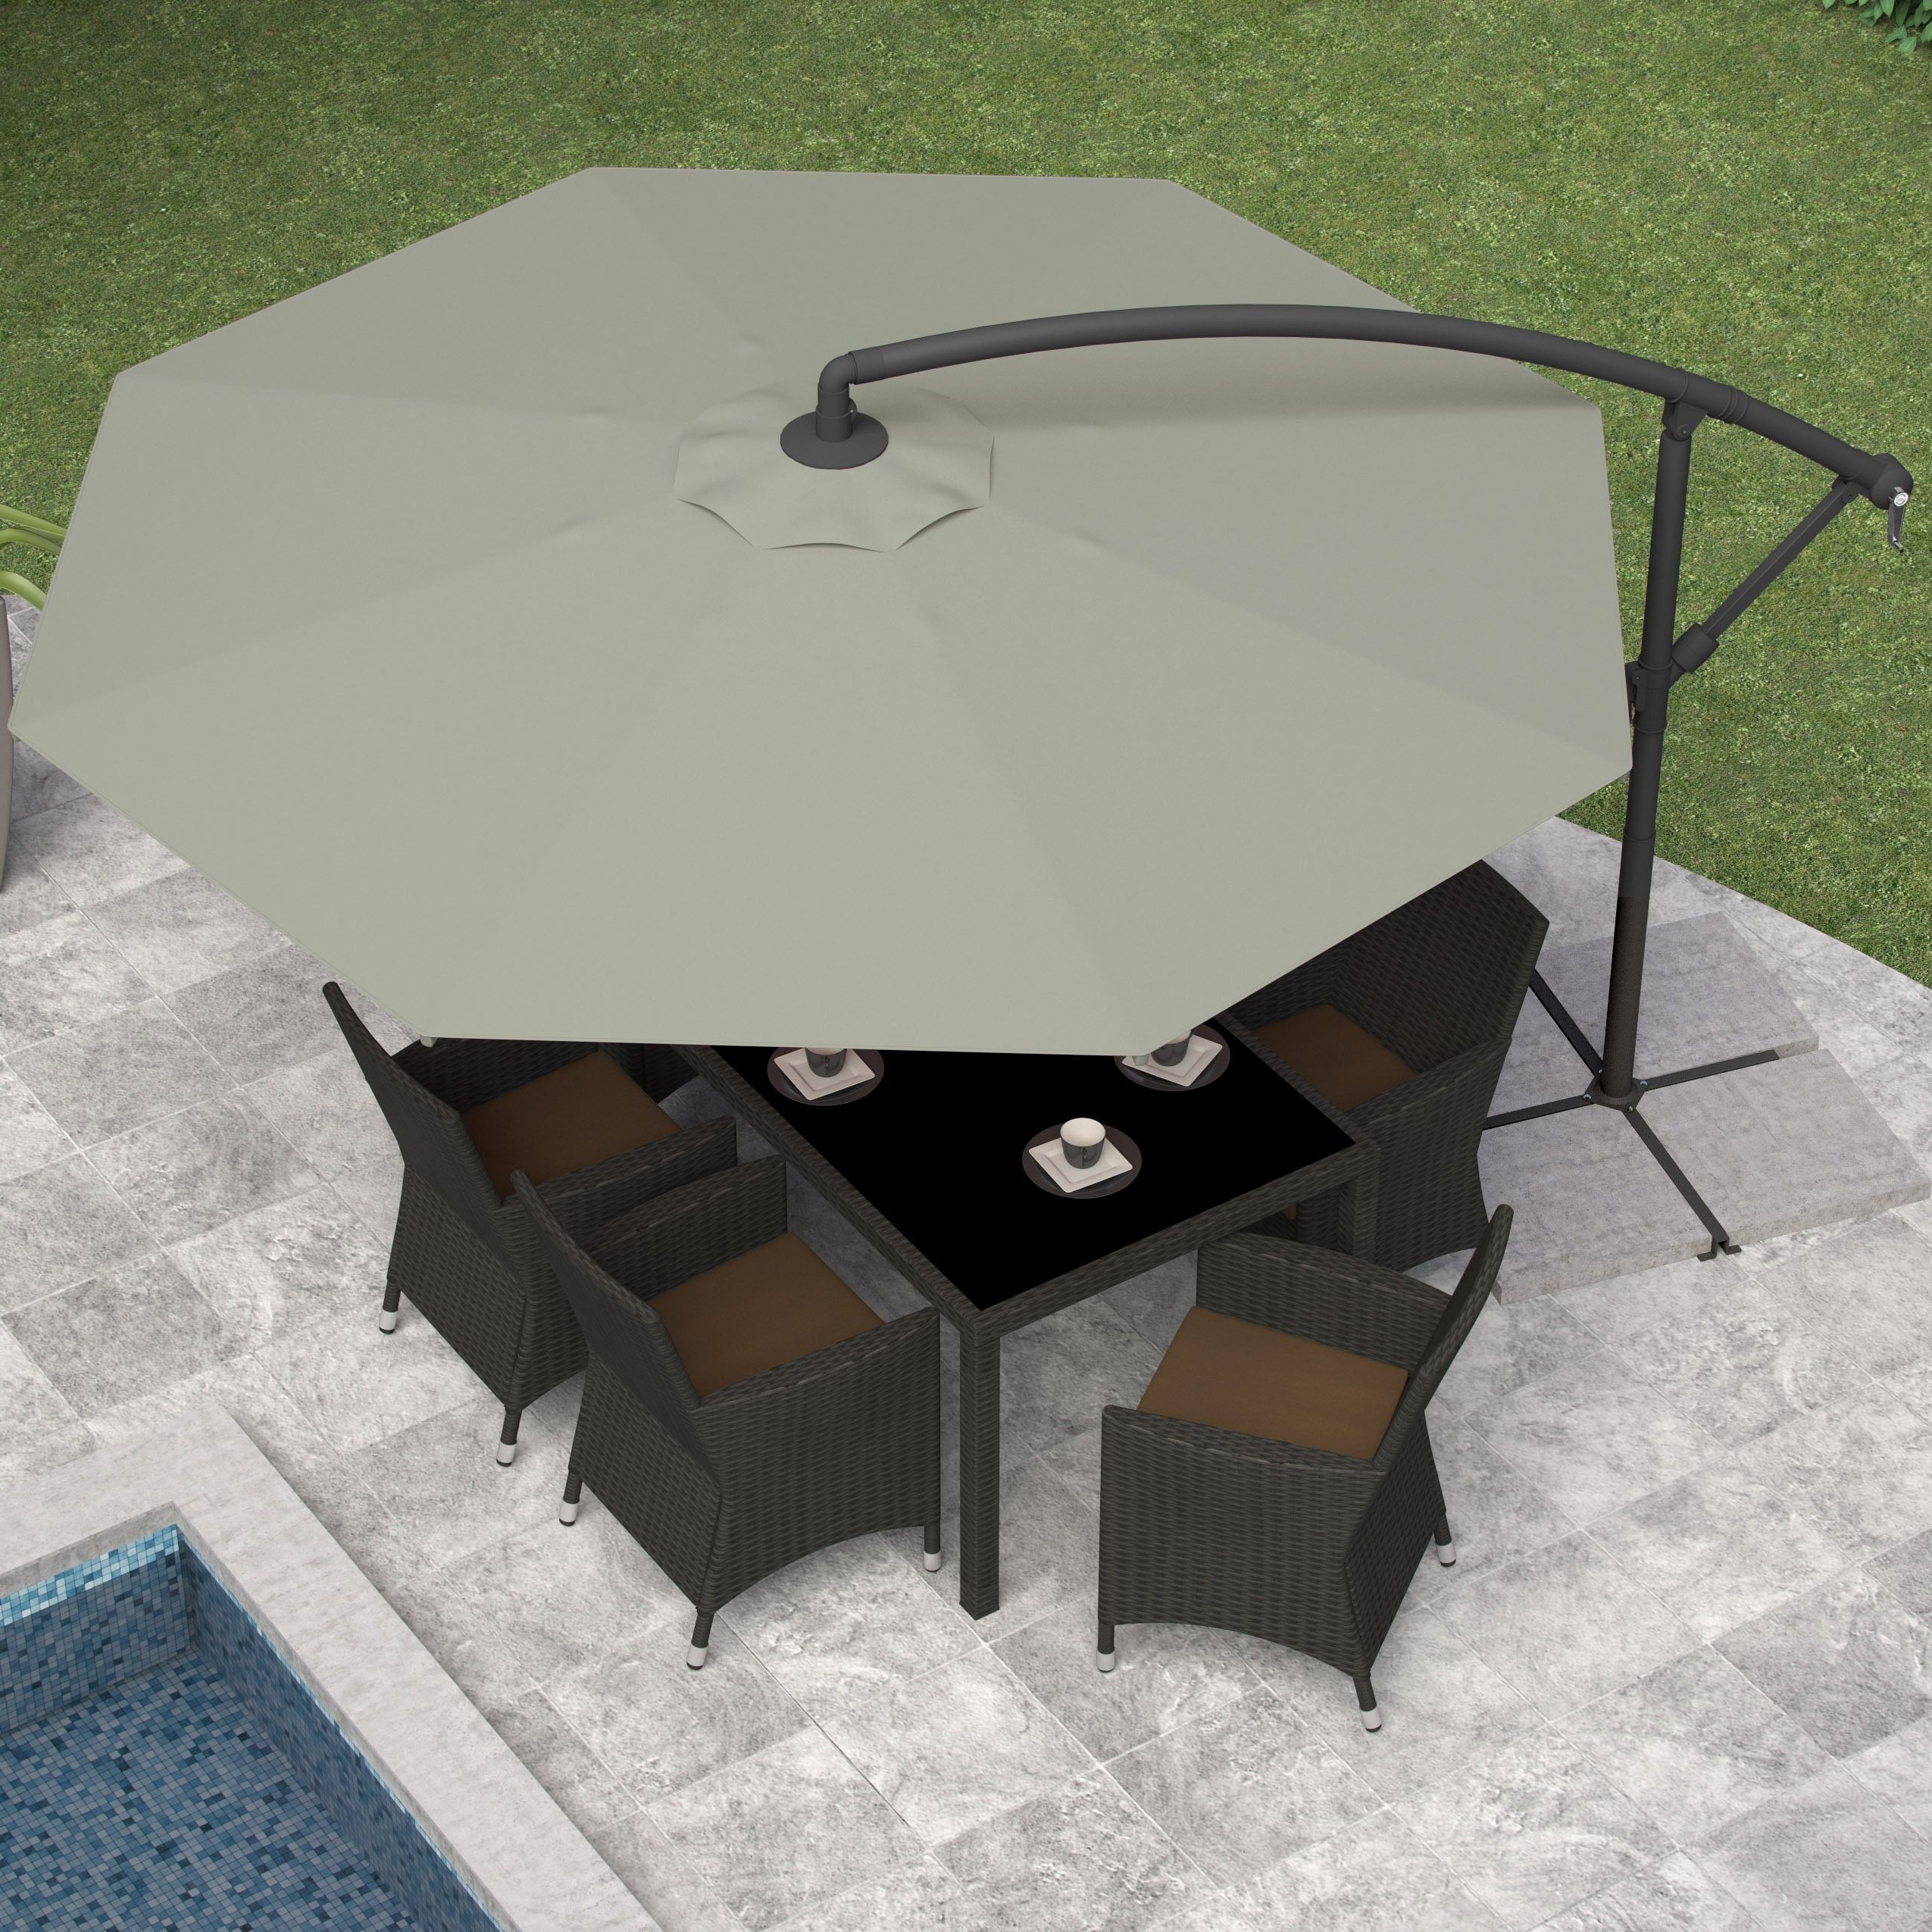 Kedzie Outdoor Cantilever Umbrellas With Most Current 11' Offset Patio Umbrella Aqua – Light Wood Pole – Threshold (View 8 of 20)